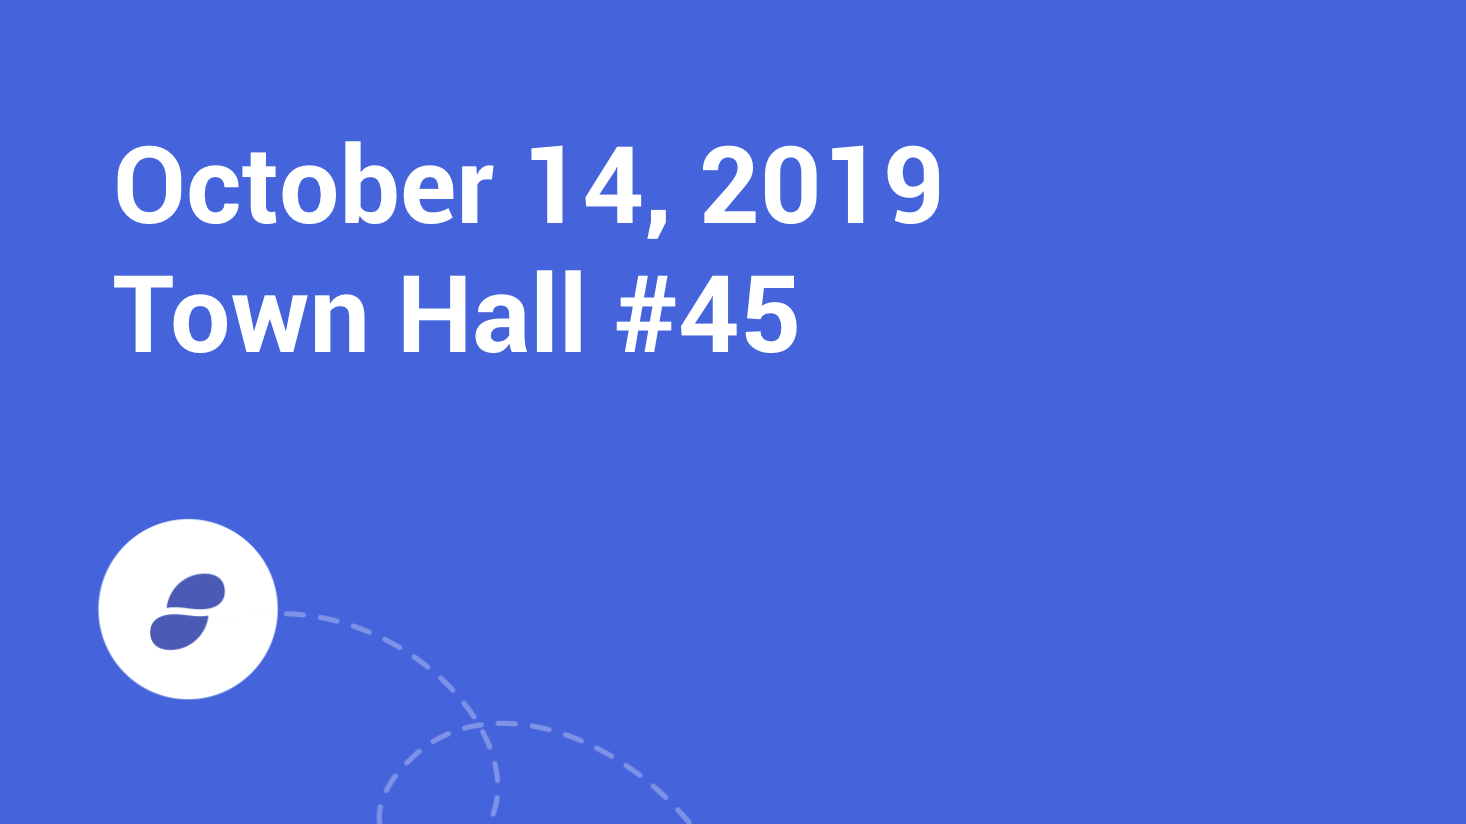 Town Hall #45 - Monday October 14, 2019